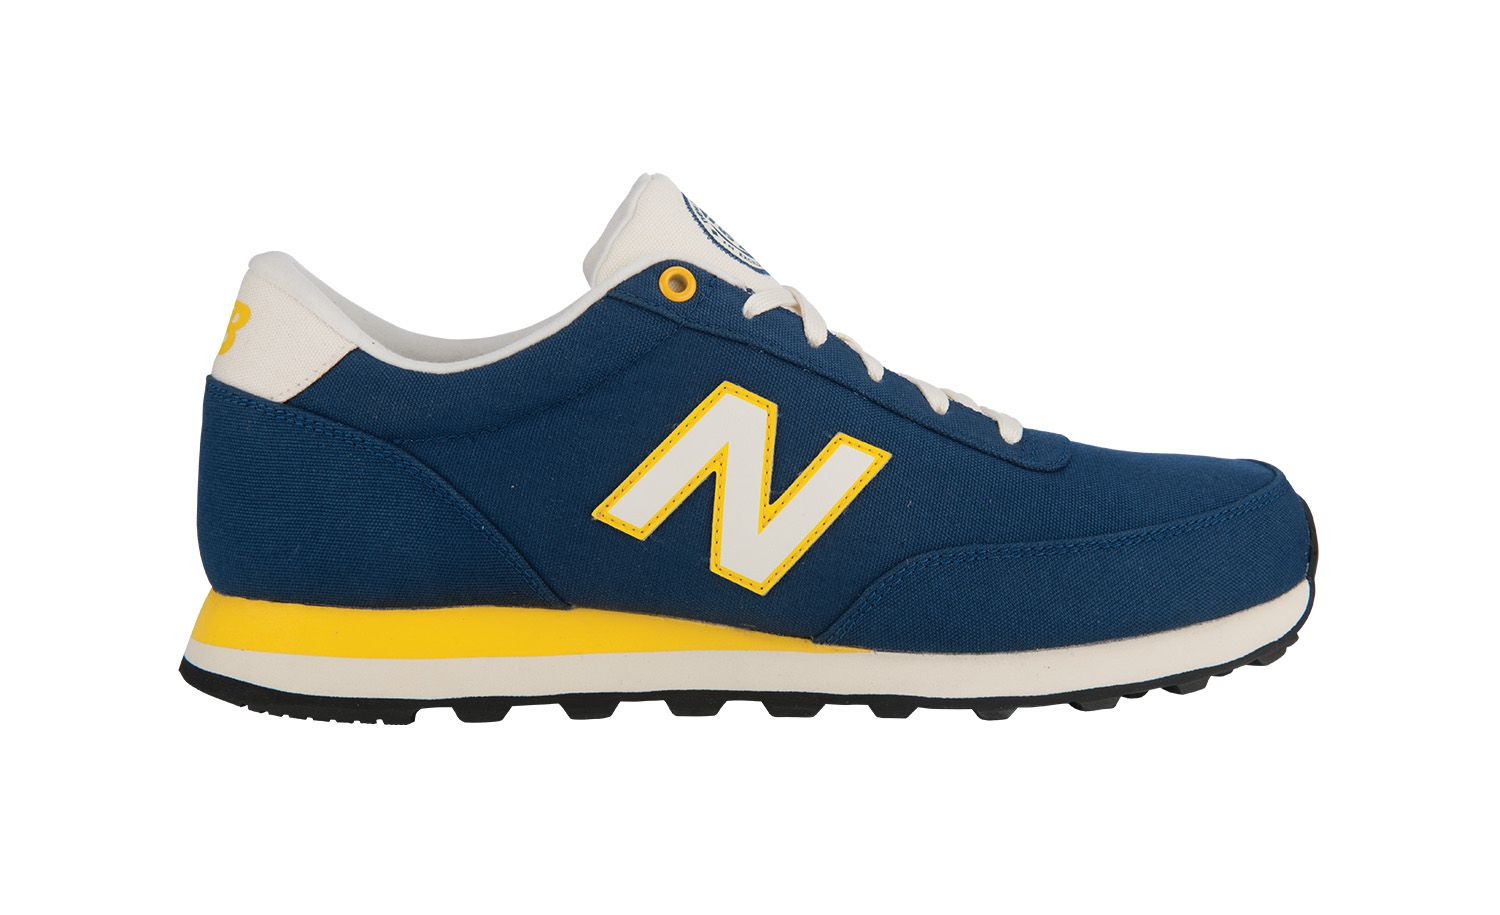 New Balance 501 Rugby